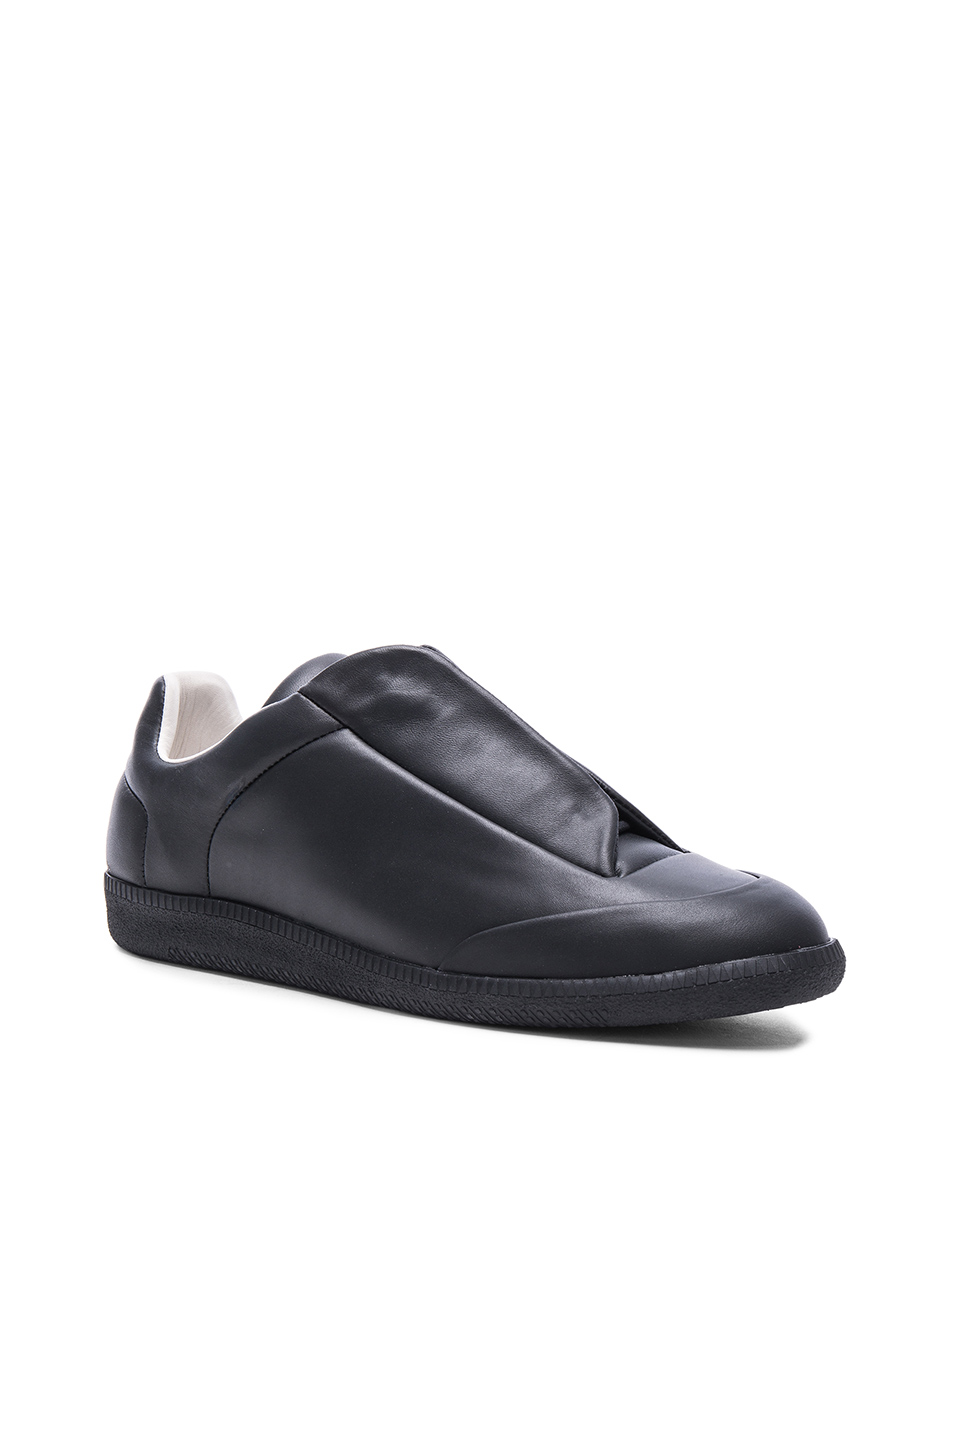 Maison Margiela Calfskin Future Low Top Sneakers in Black